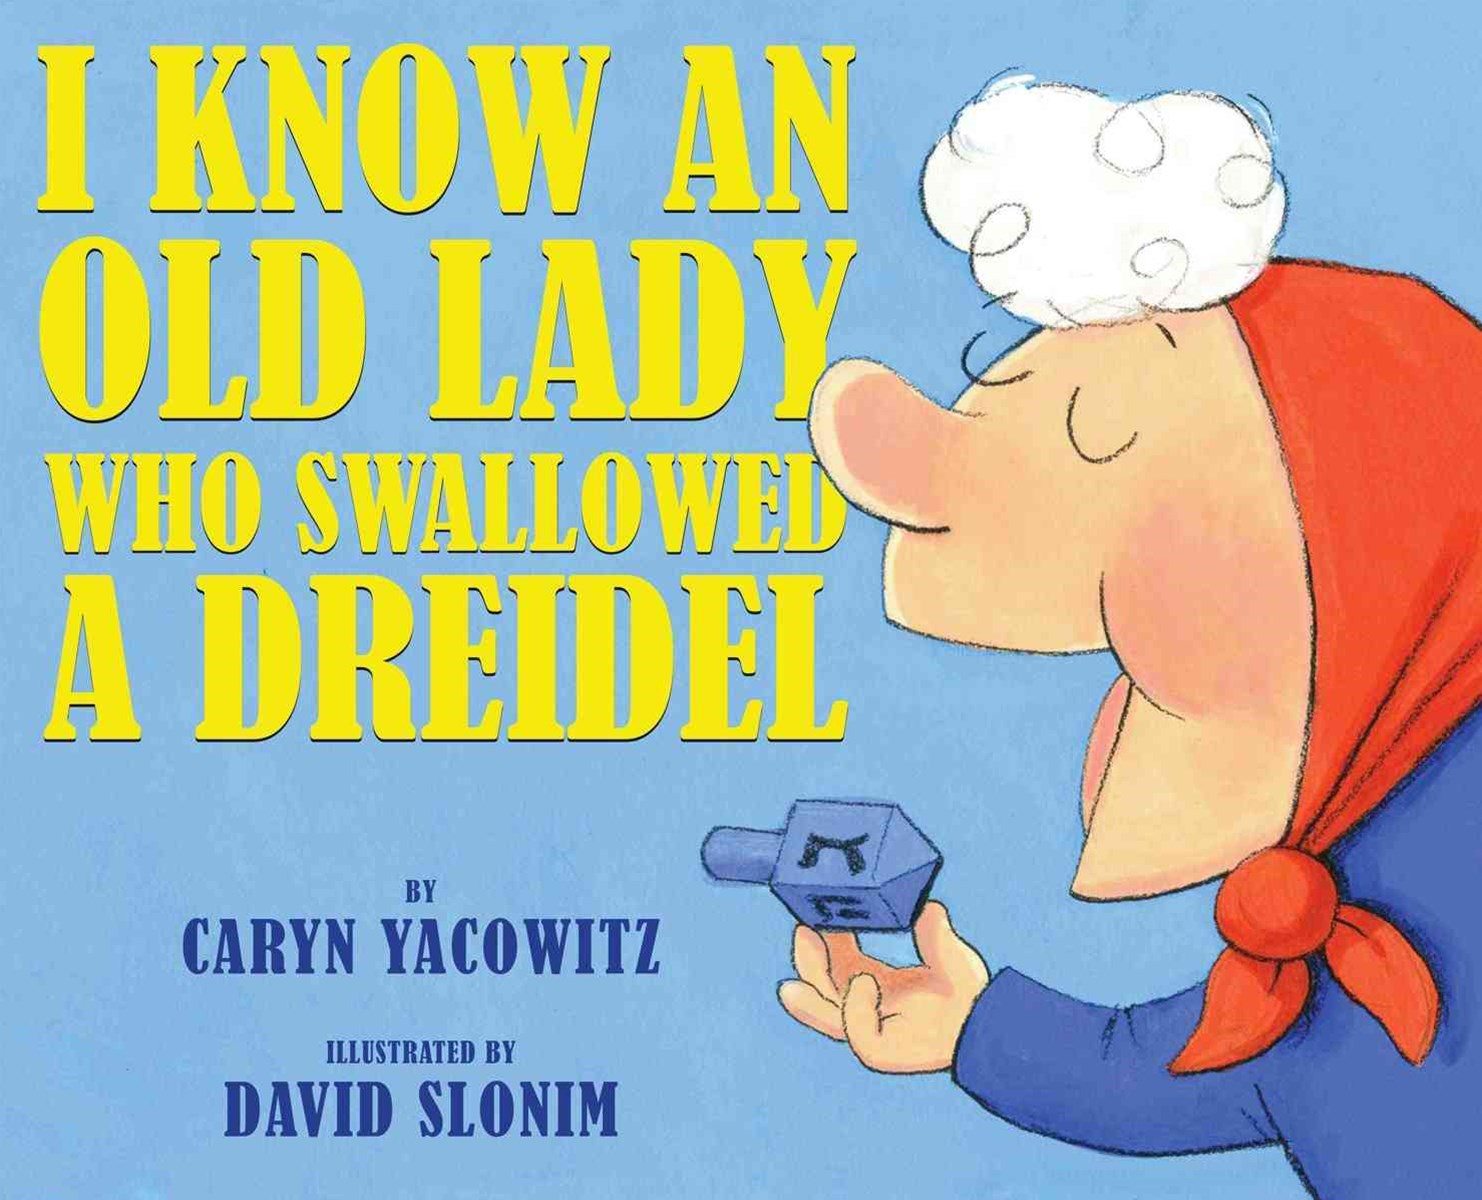 I Know an Old Lady Who Swallowed a Dreidel